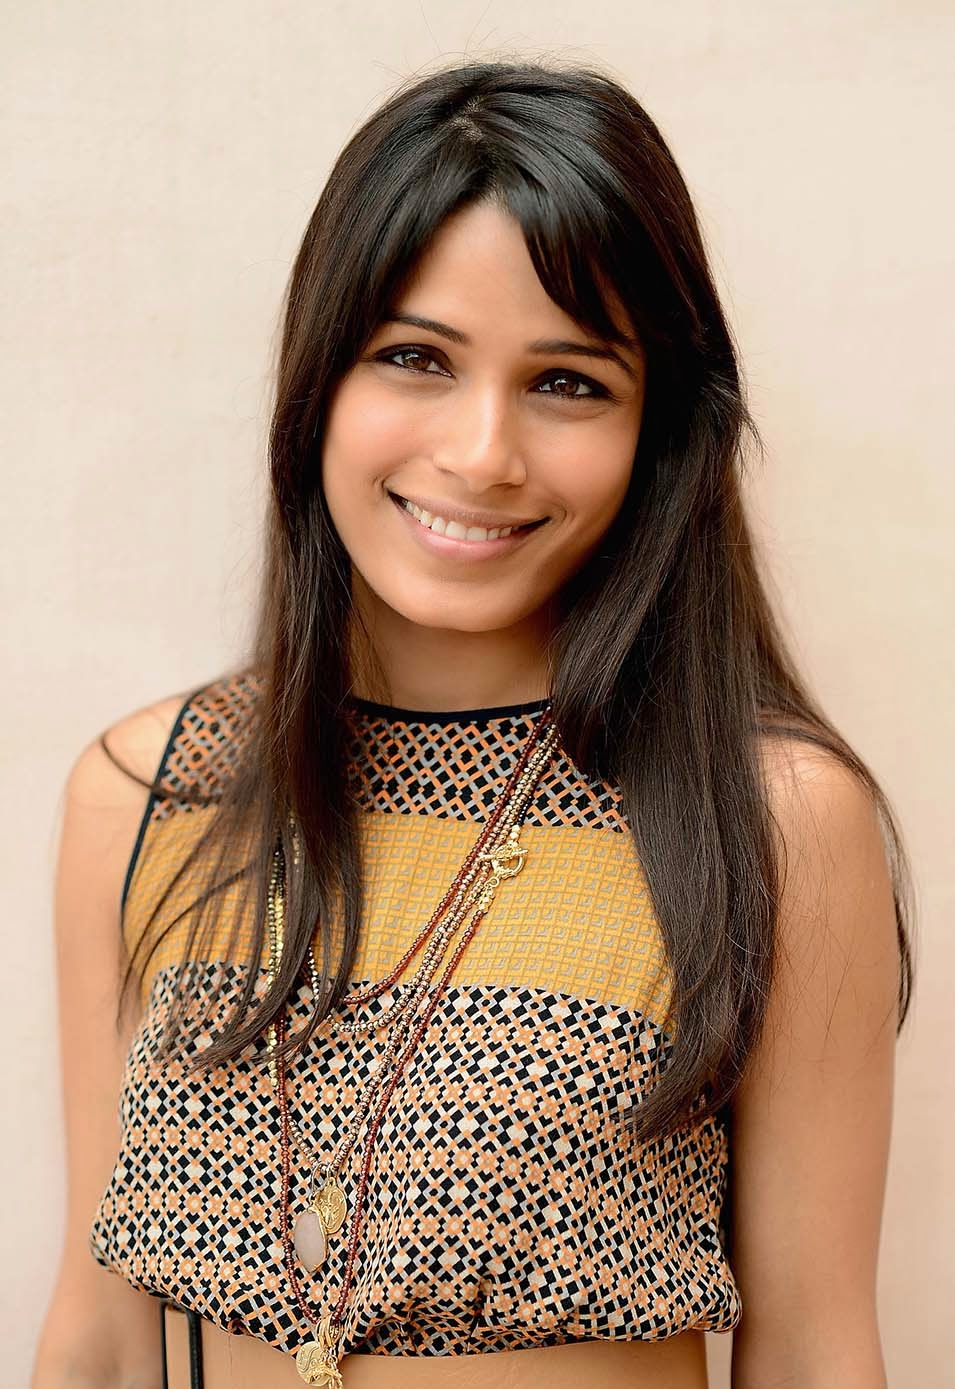 Freida Selena Pinto Nice Image And Photo Album | photo ... Freida Pinto